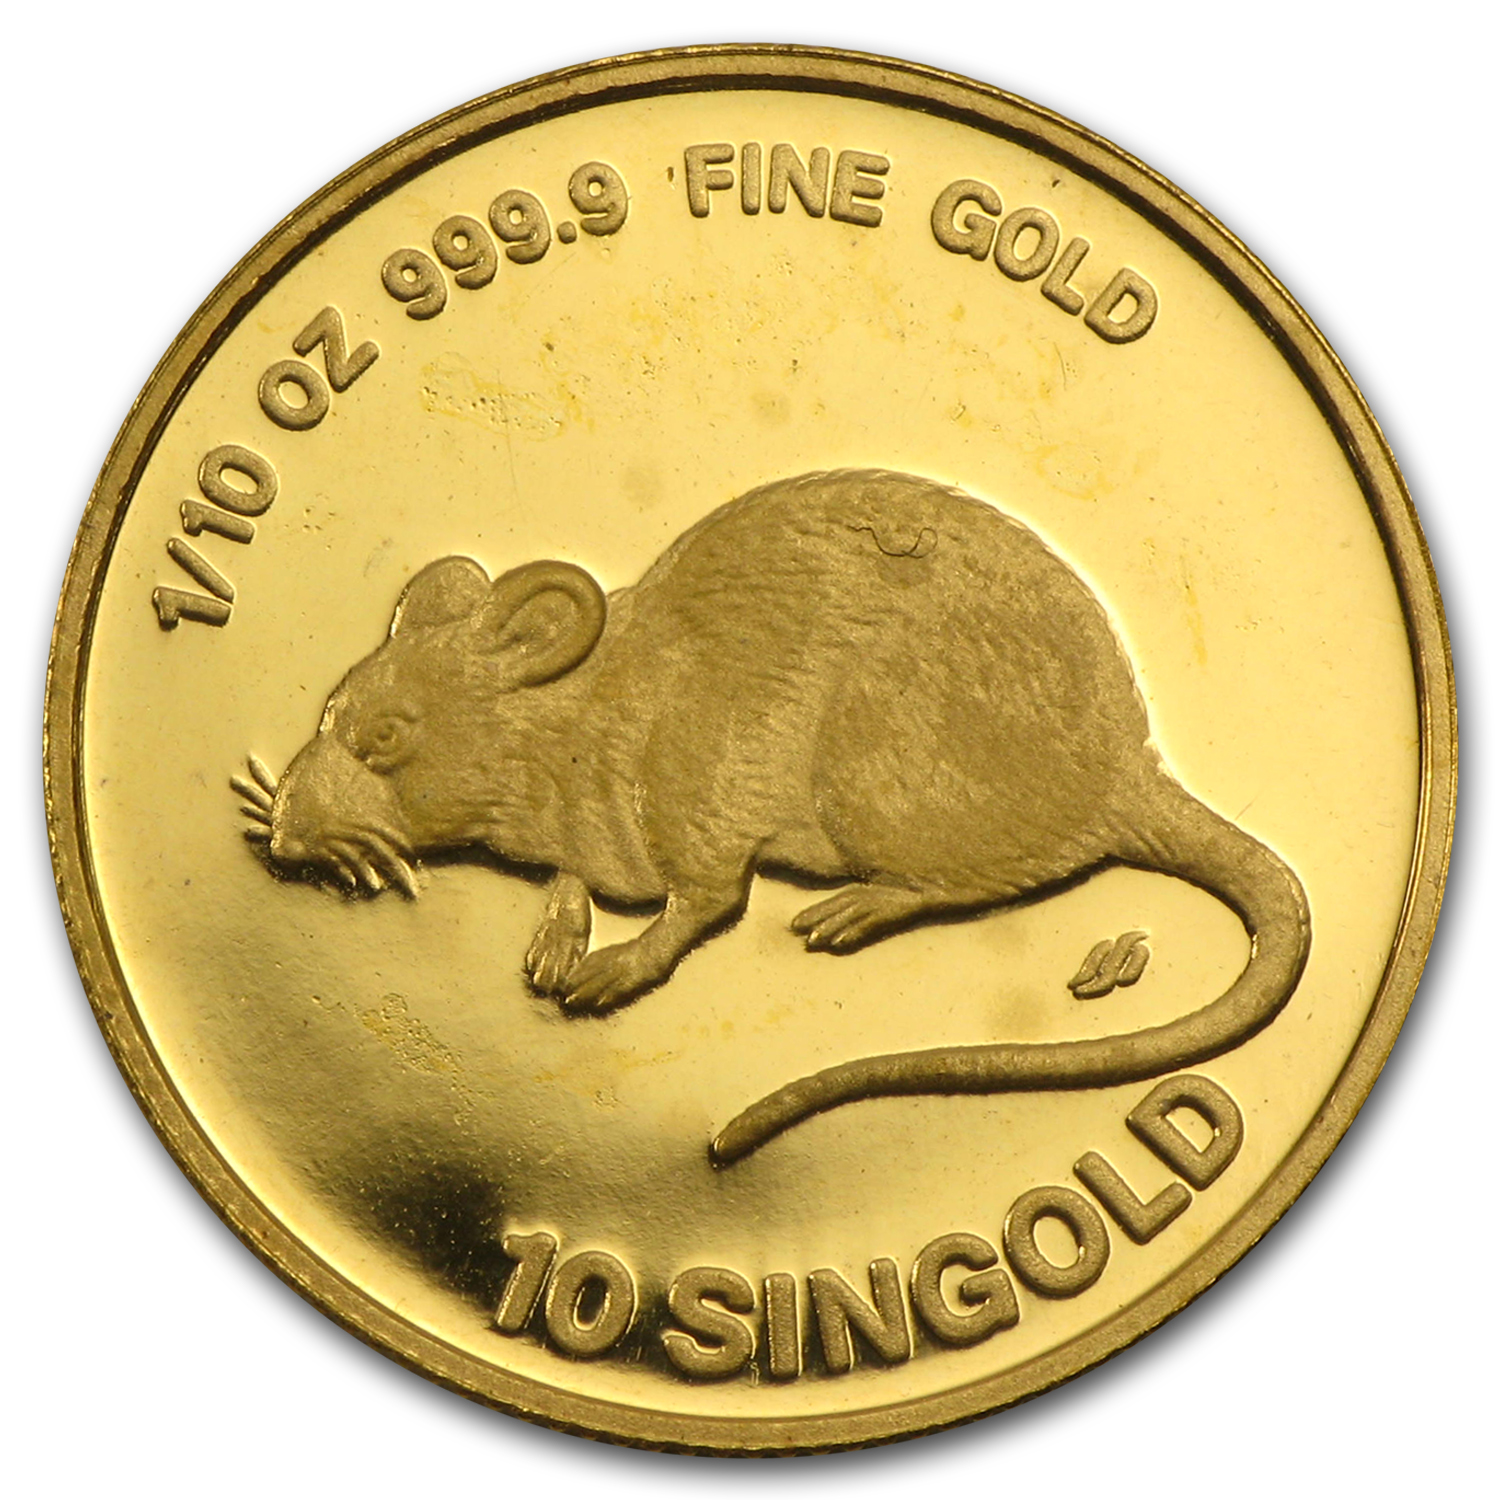 Singapore 1984 - 10 Singold 1/10 Oz Gold Year of the Rat